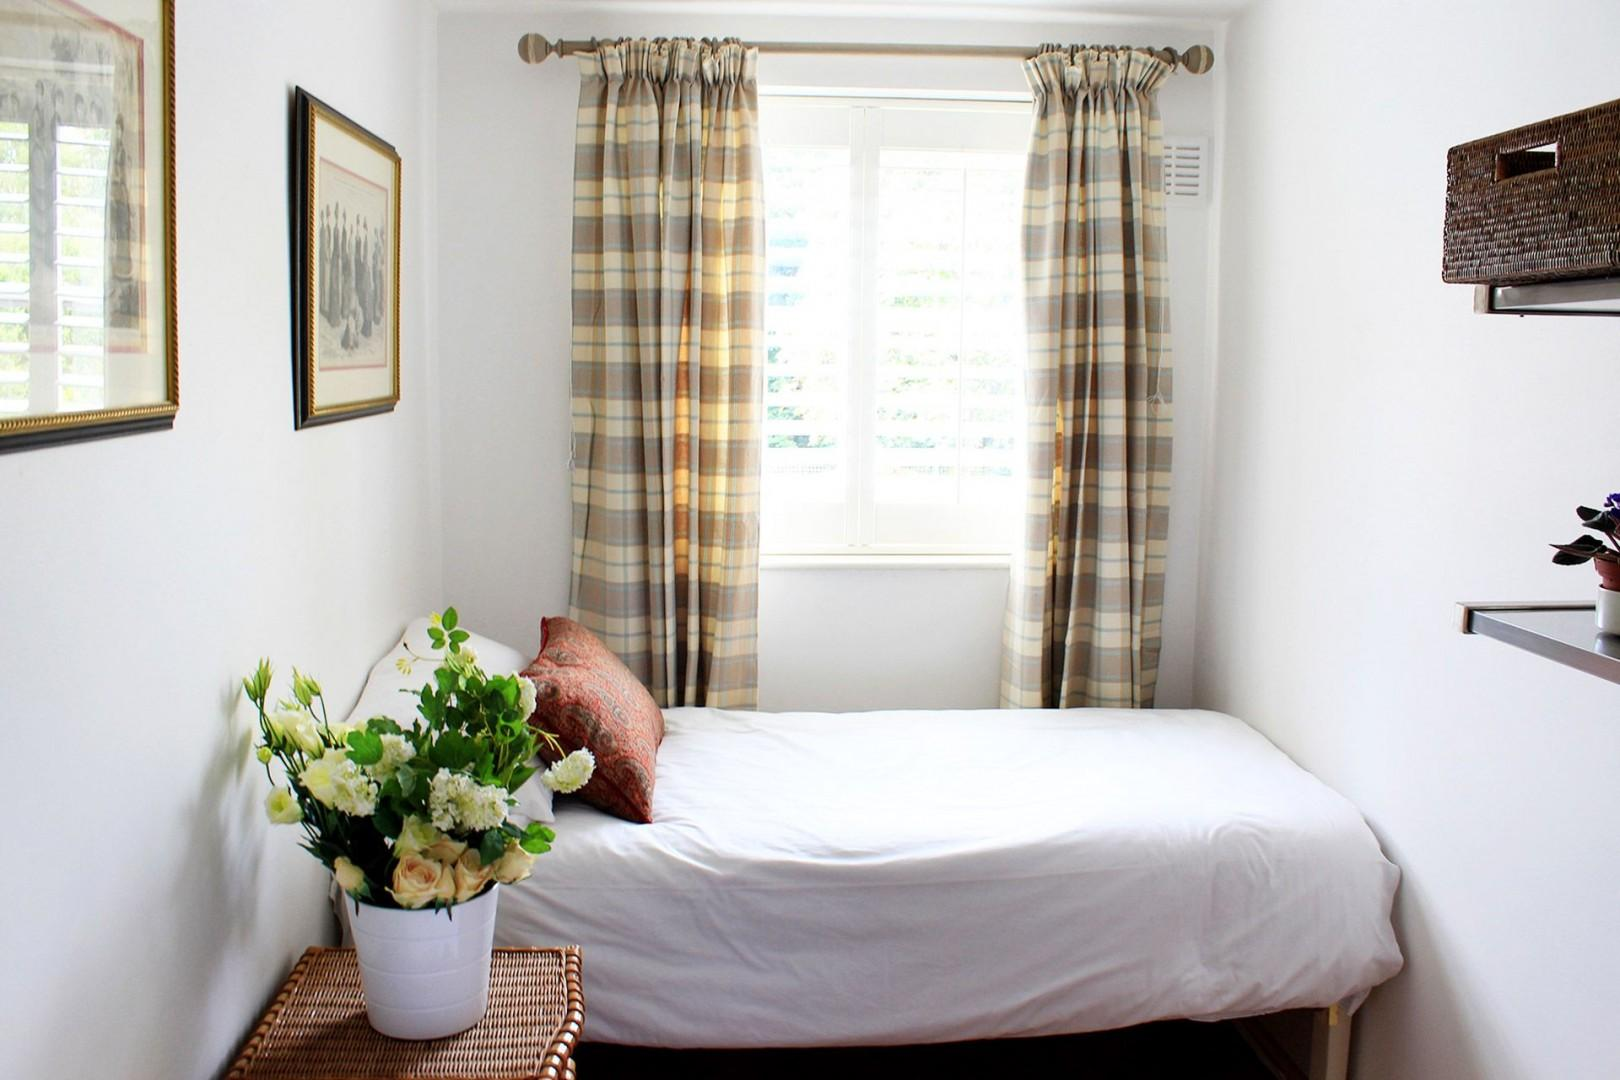 Sunny second bedroom features a comfortable bed and trundle